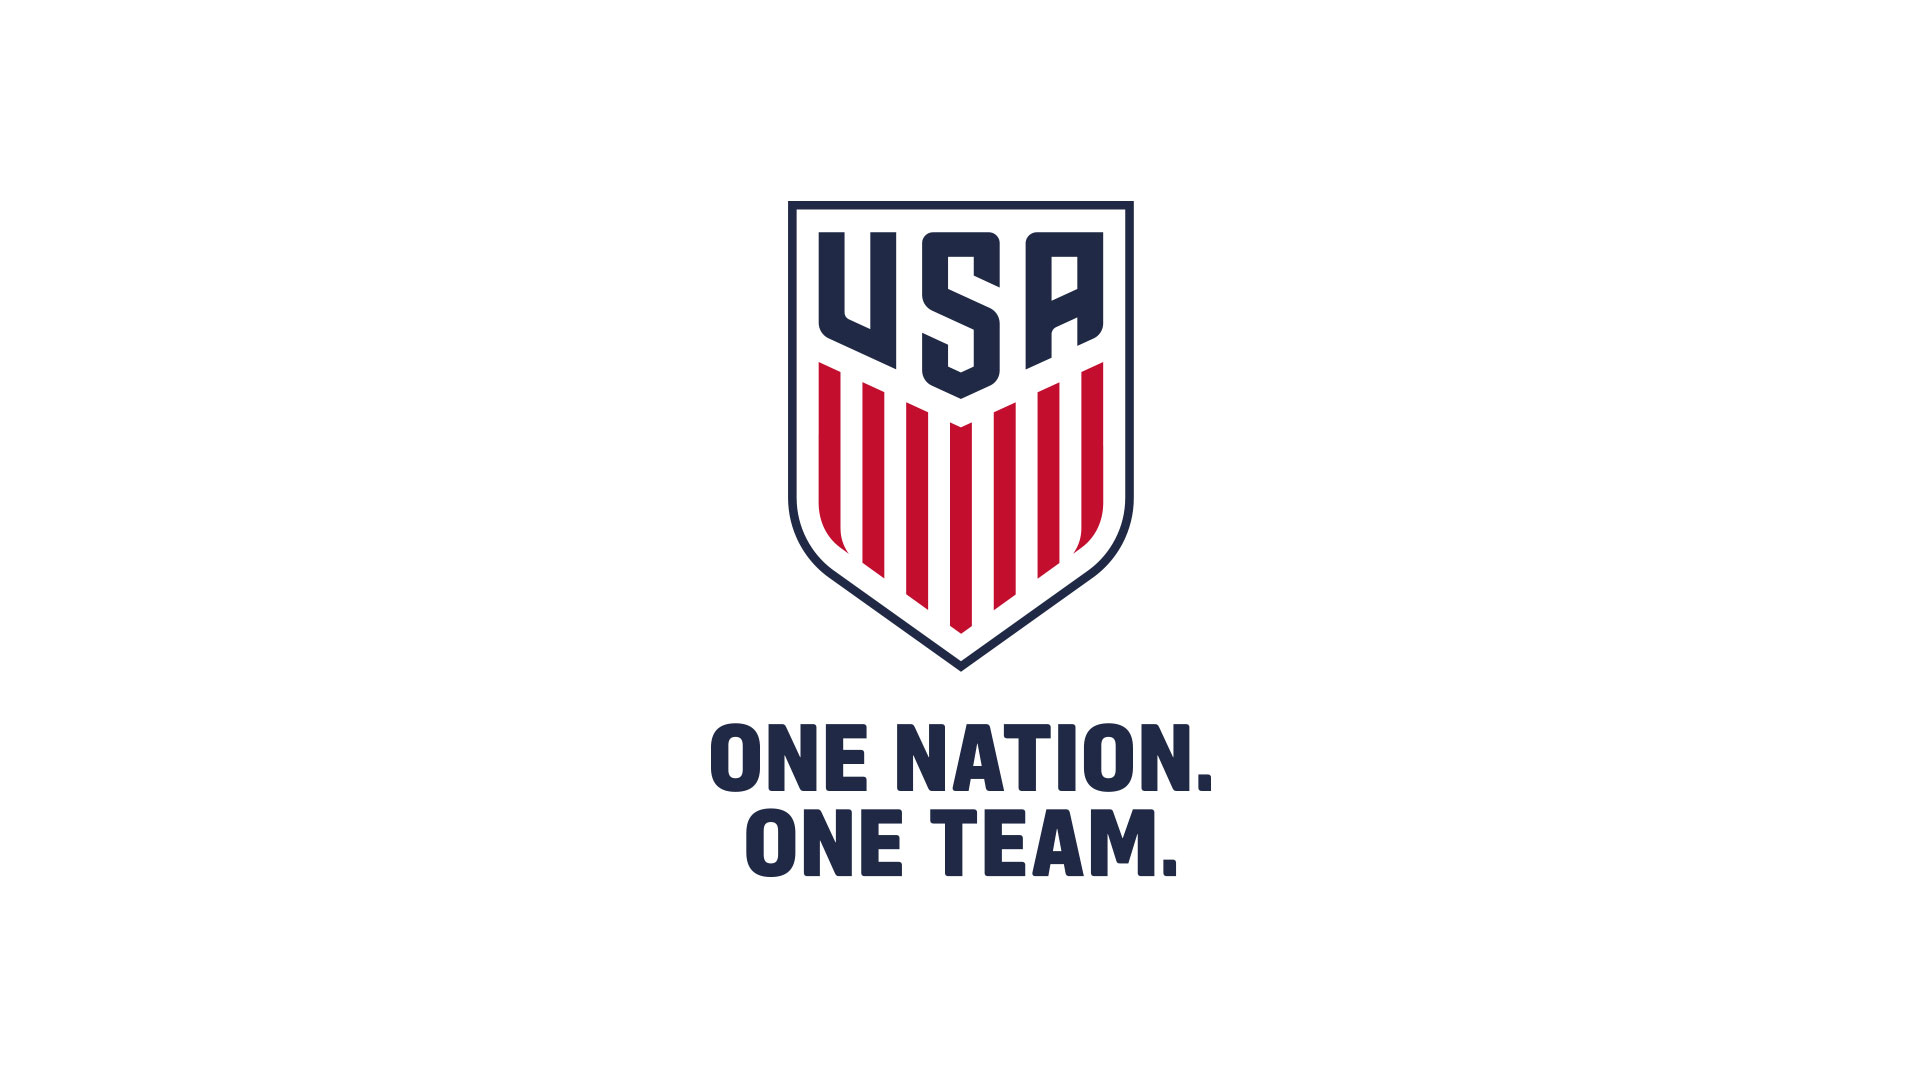 Usa Soccer Wallpaper 2015 112 images in Collection Page 2 1920x1080